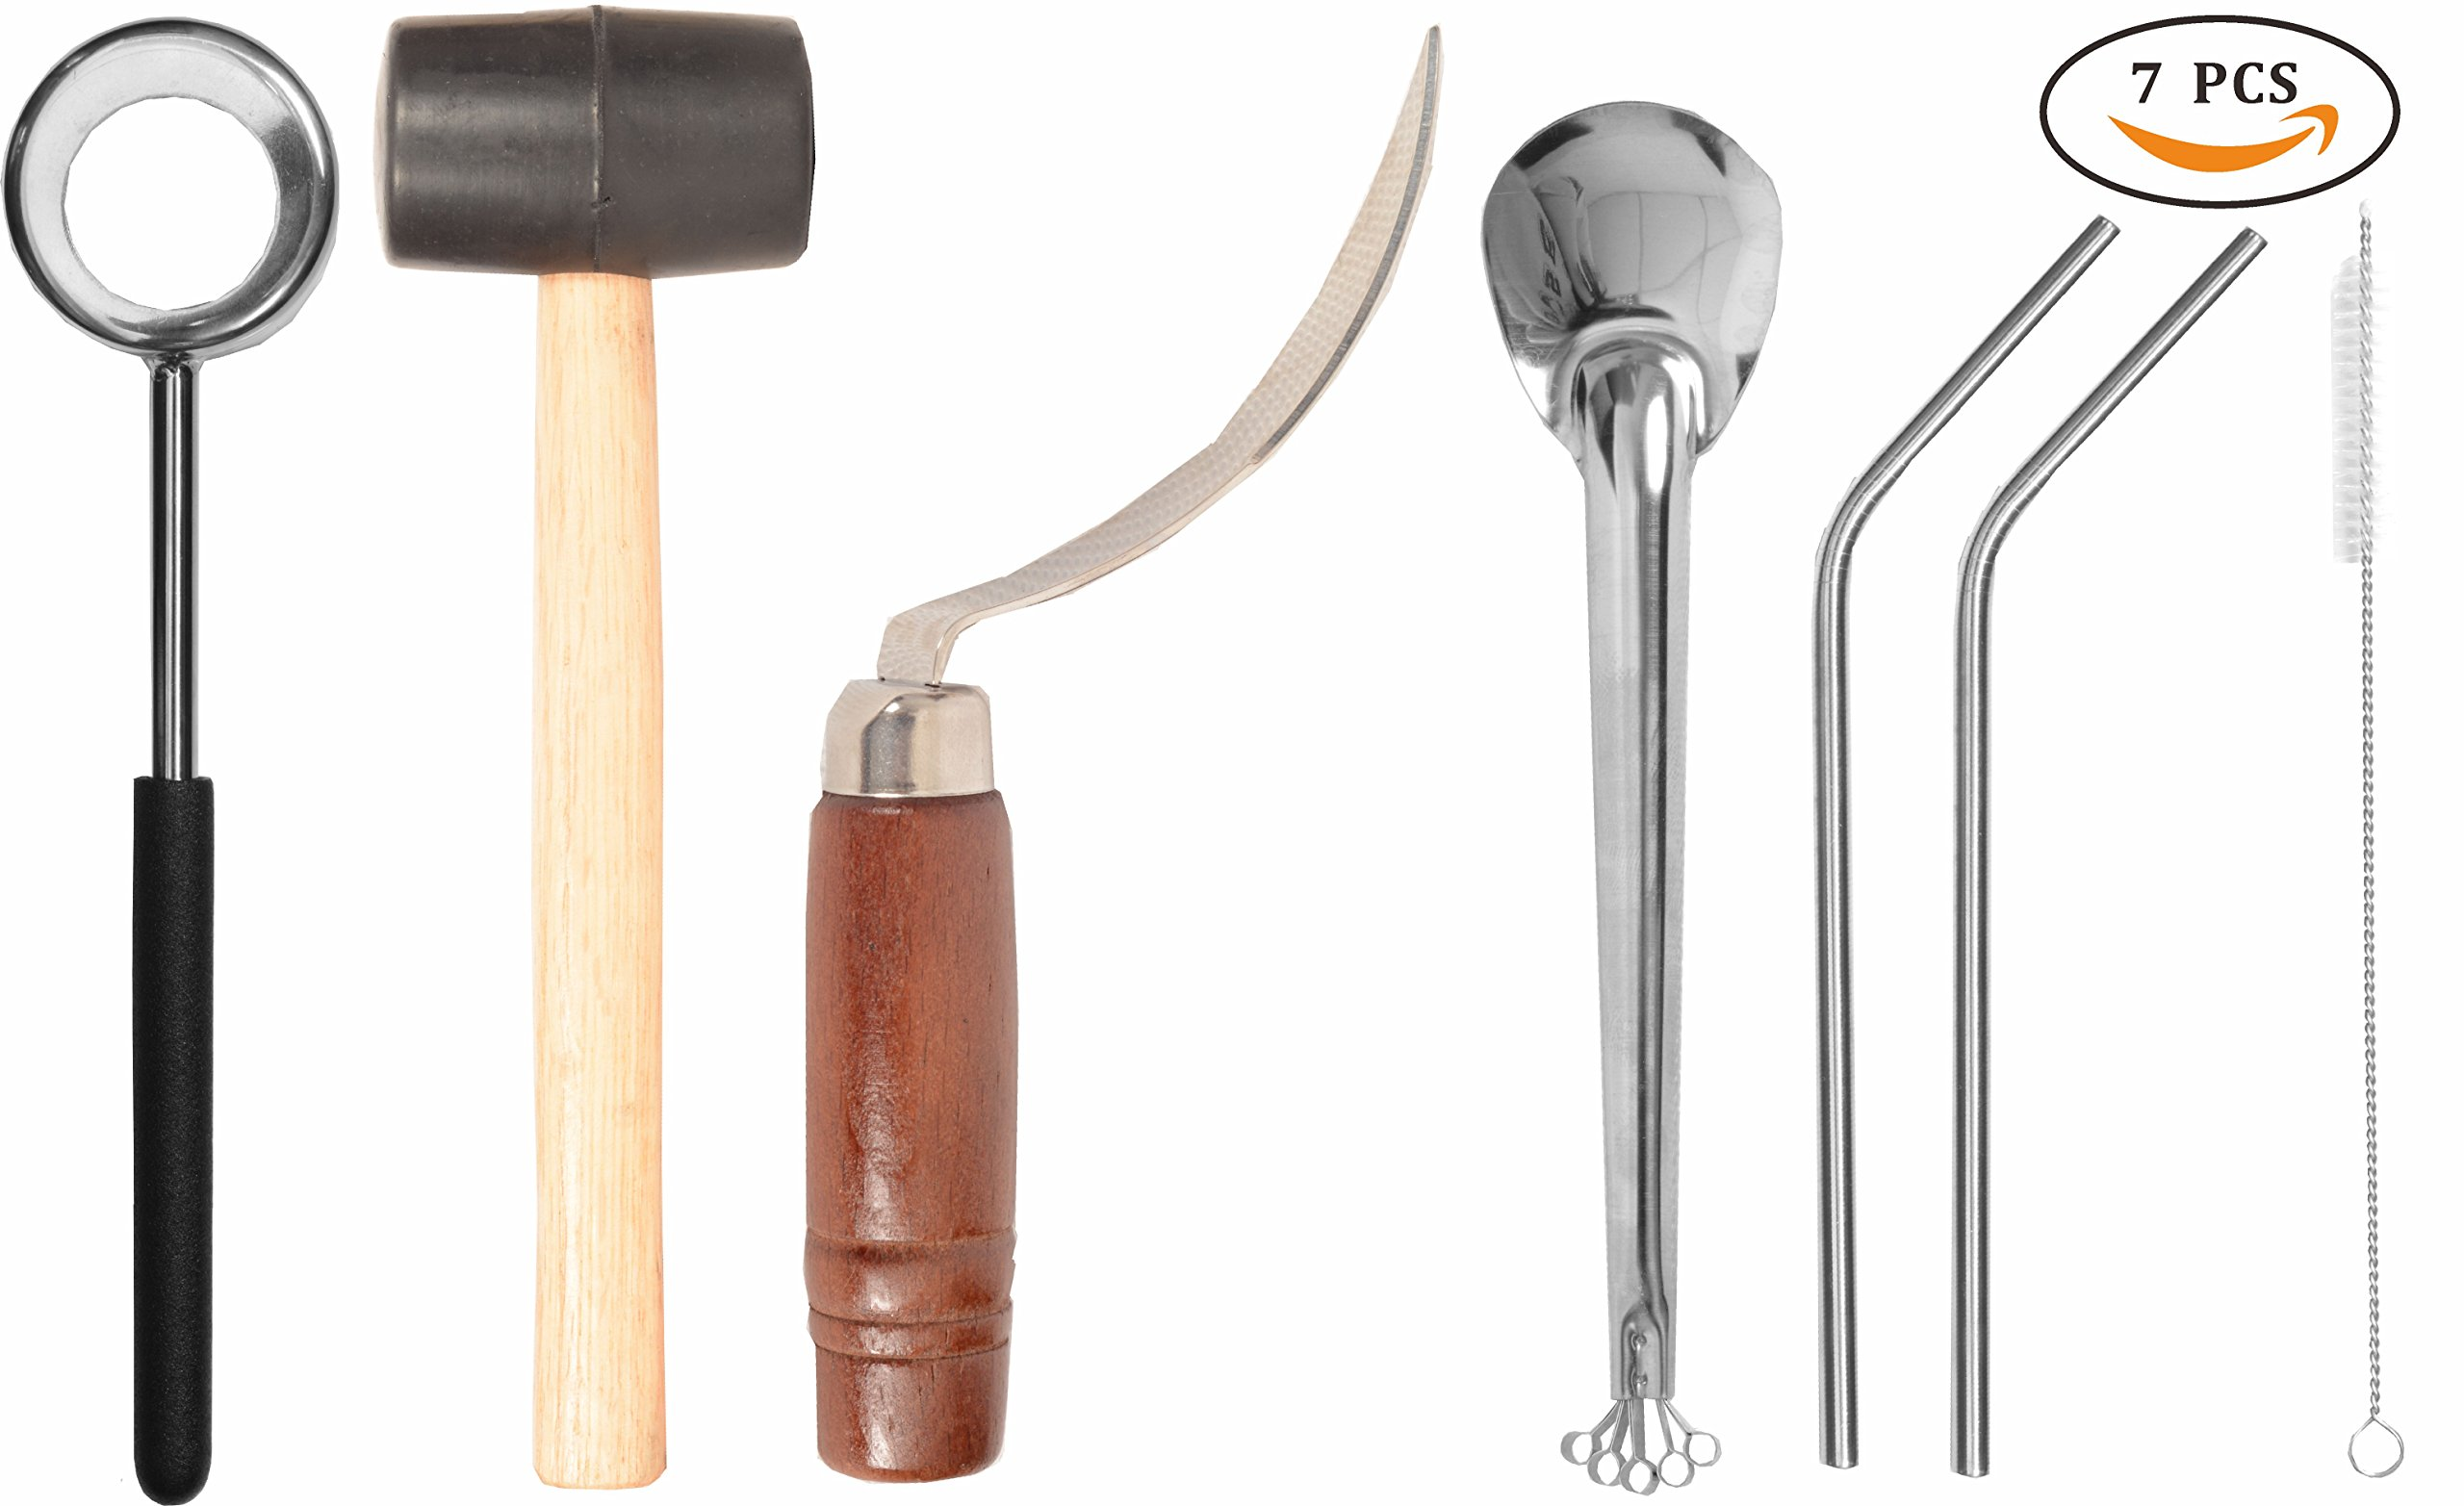 Coconut Opener, Coconut Opener Kit with Hammer Stainless Steel Opening Utensil Premium Wooden Handle, Coconut spoon, Drinking Straws, Straw Cleaner, Coconut Opener Tool Set for all Coconuts Drinks